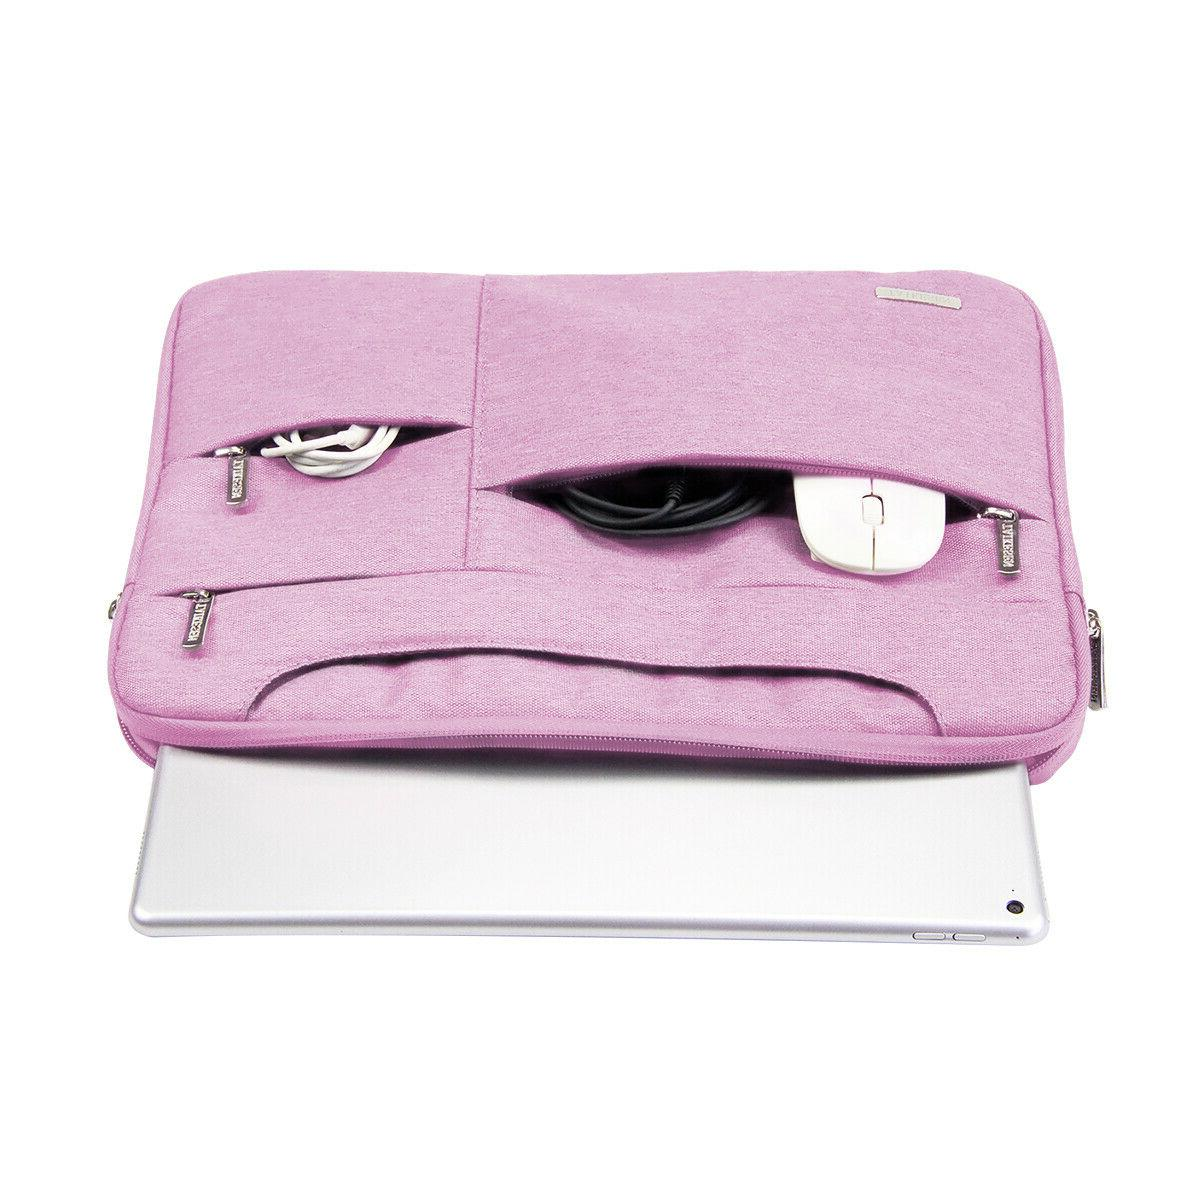 Water 11-13.3 Bag For iPad 6 Pink